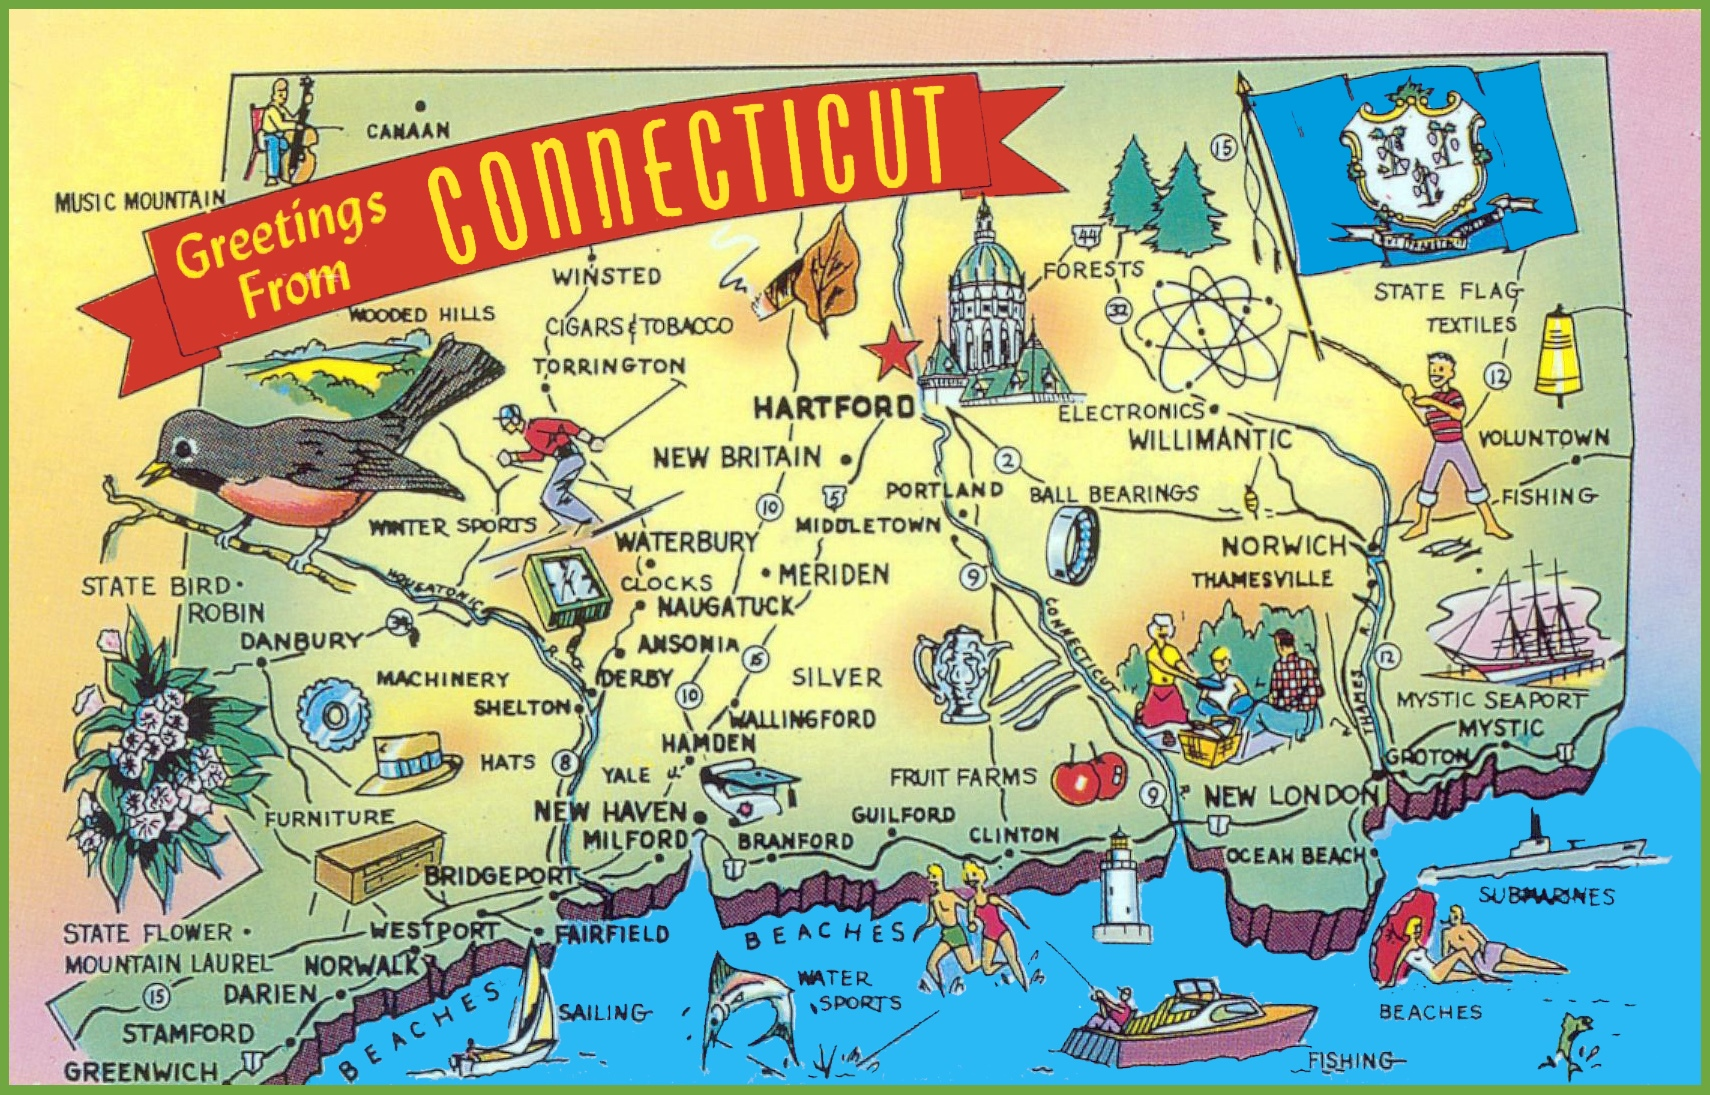 Connecticut State Maps USA Maps Of Connecticut CT - Map usa connecticut